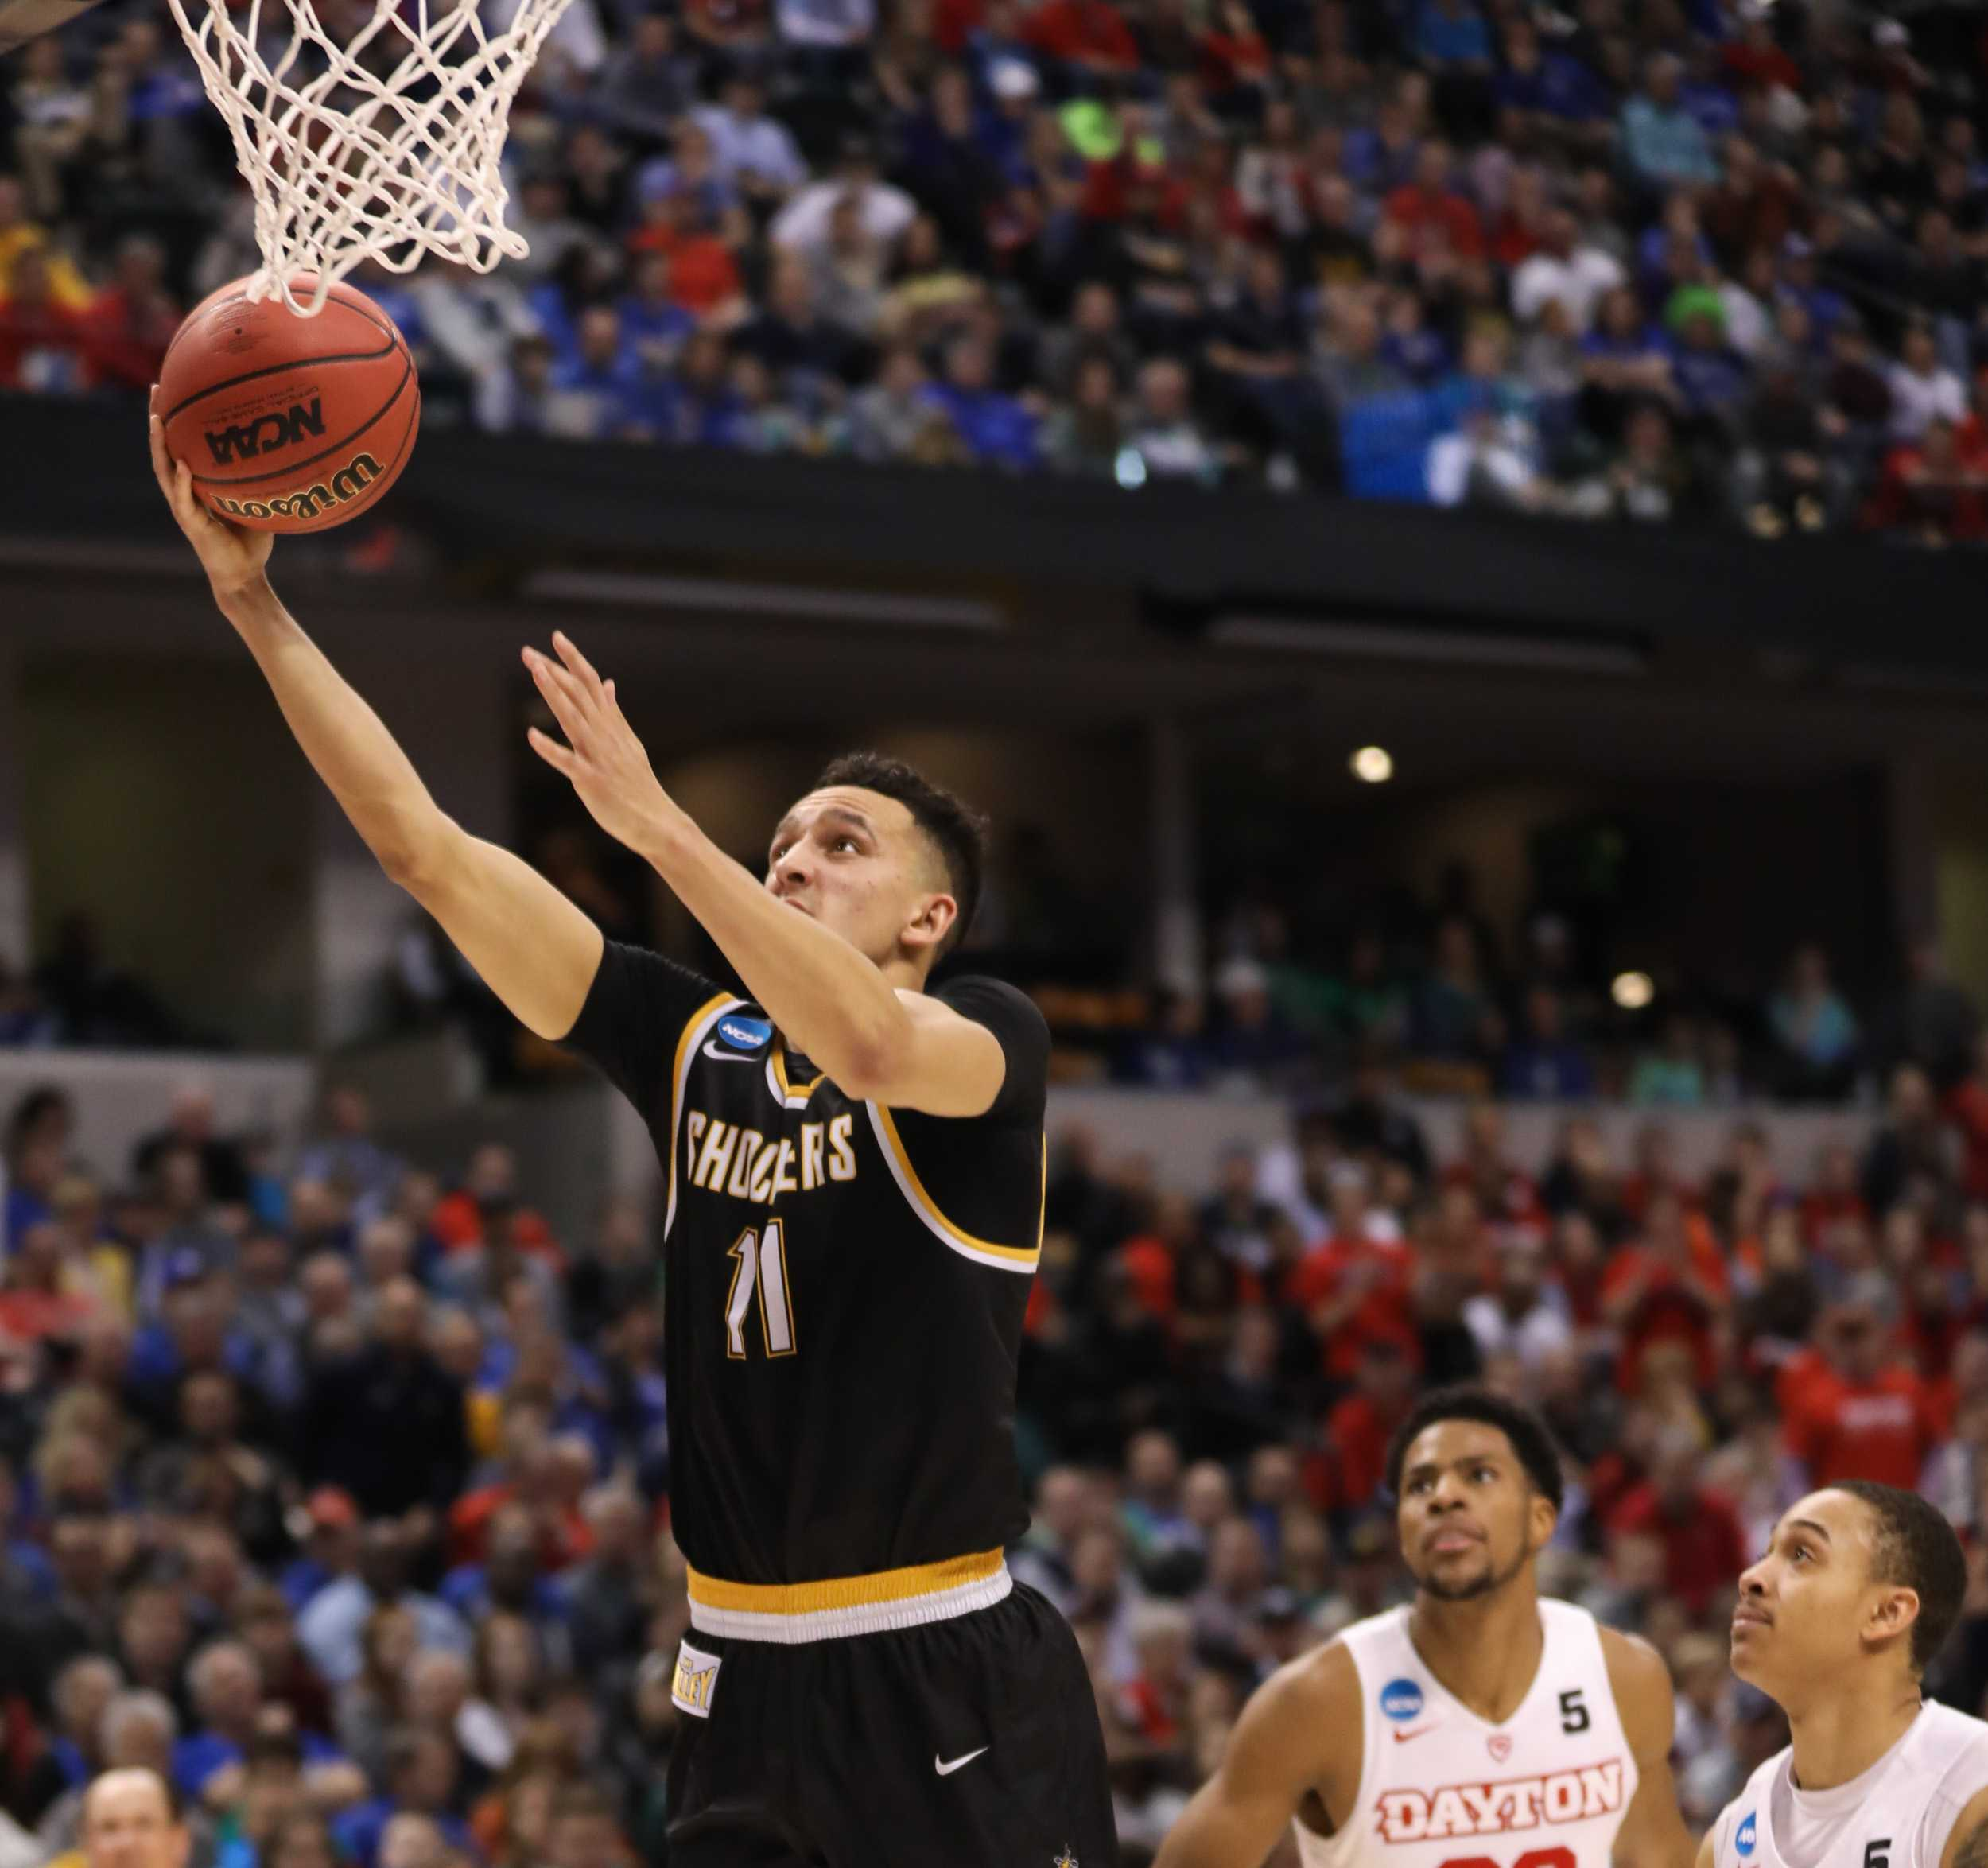 Wichita State's Landry Shamet attempts a layup against Dayton in the second half at Bankers Life Fieldhouse in Indianapolis. The Shockers beat the Flyers 64 – 58 (Mar. 17, 17, 2017)